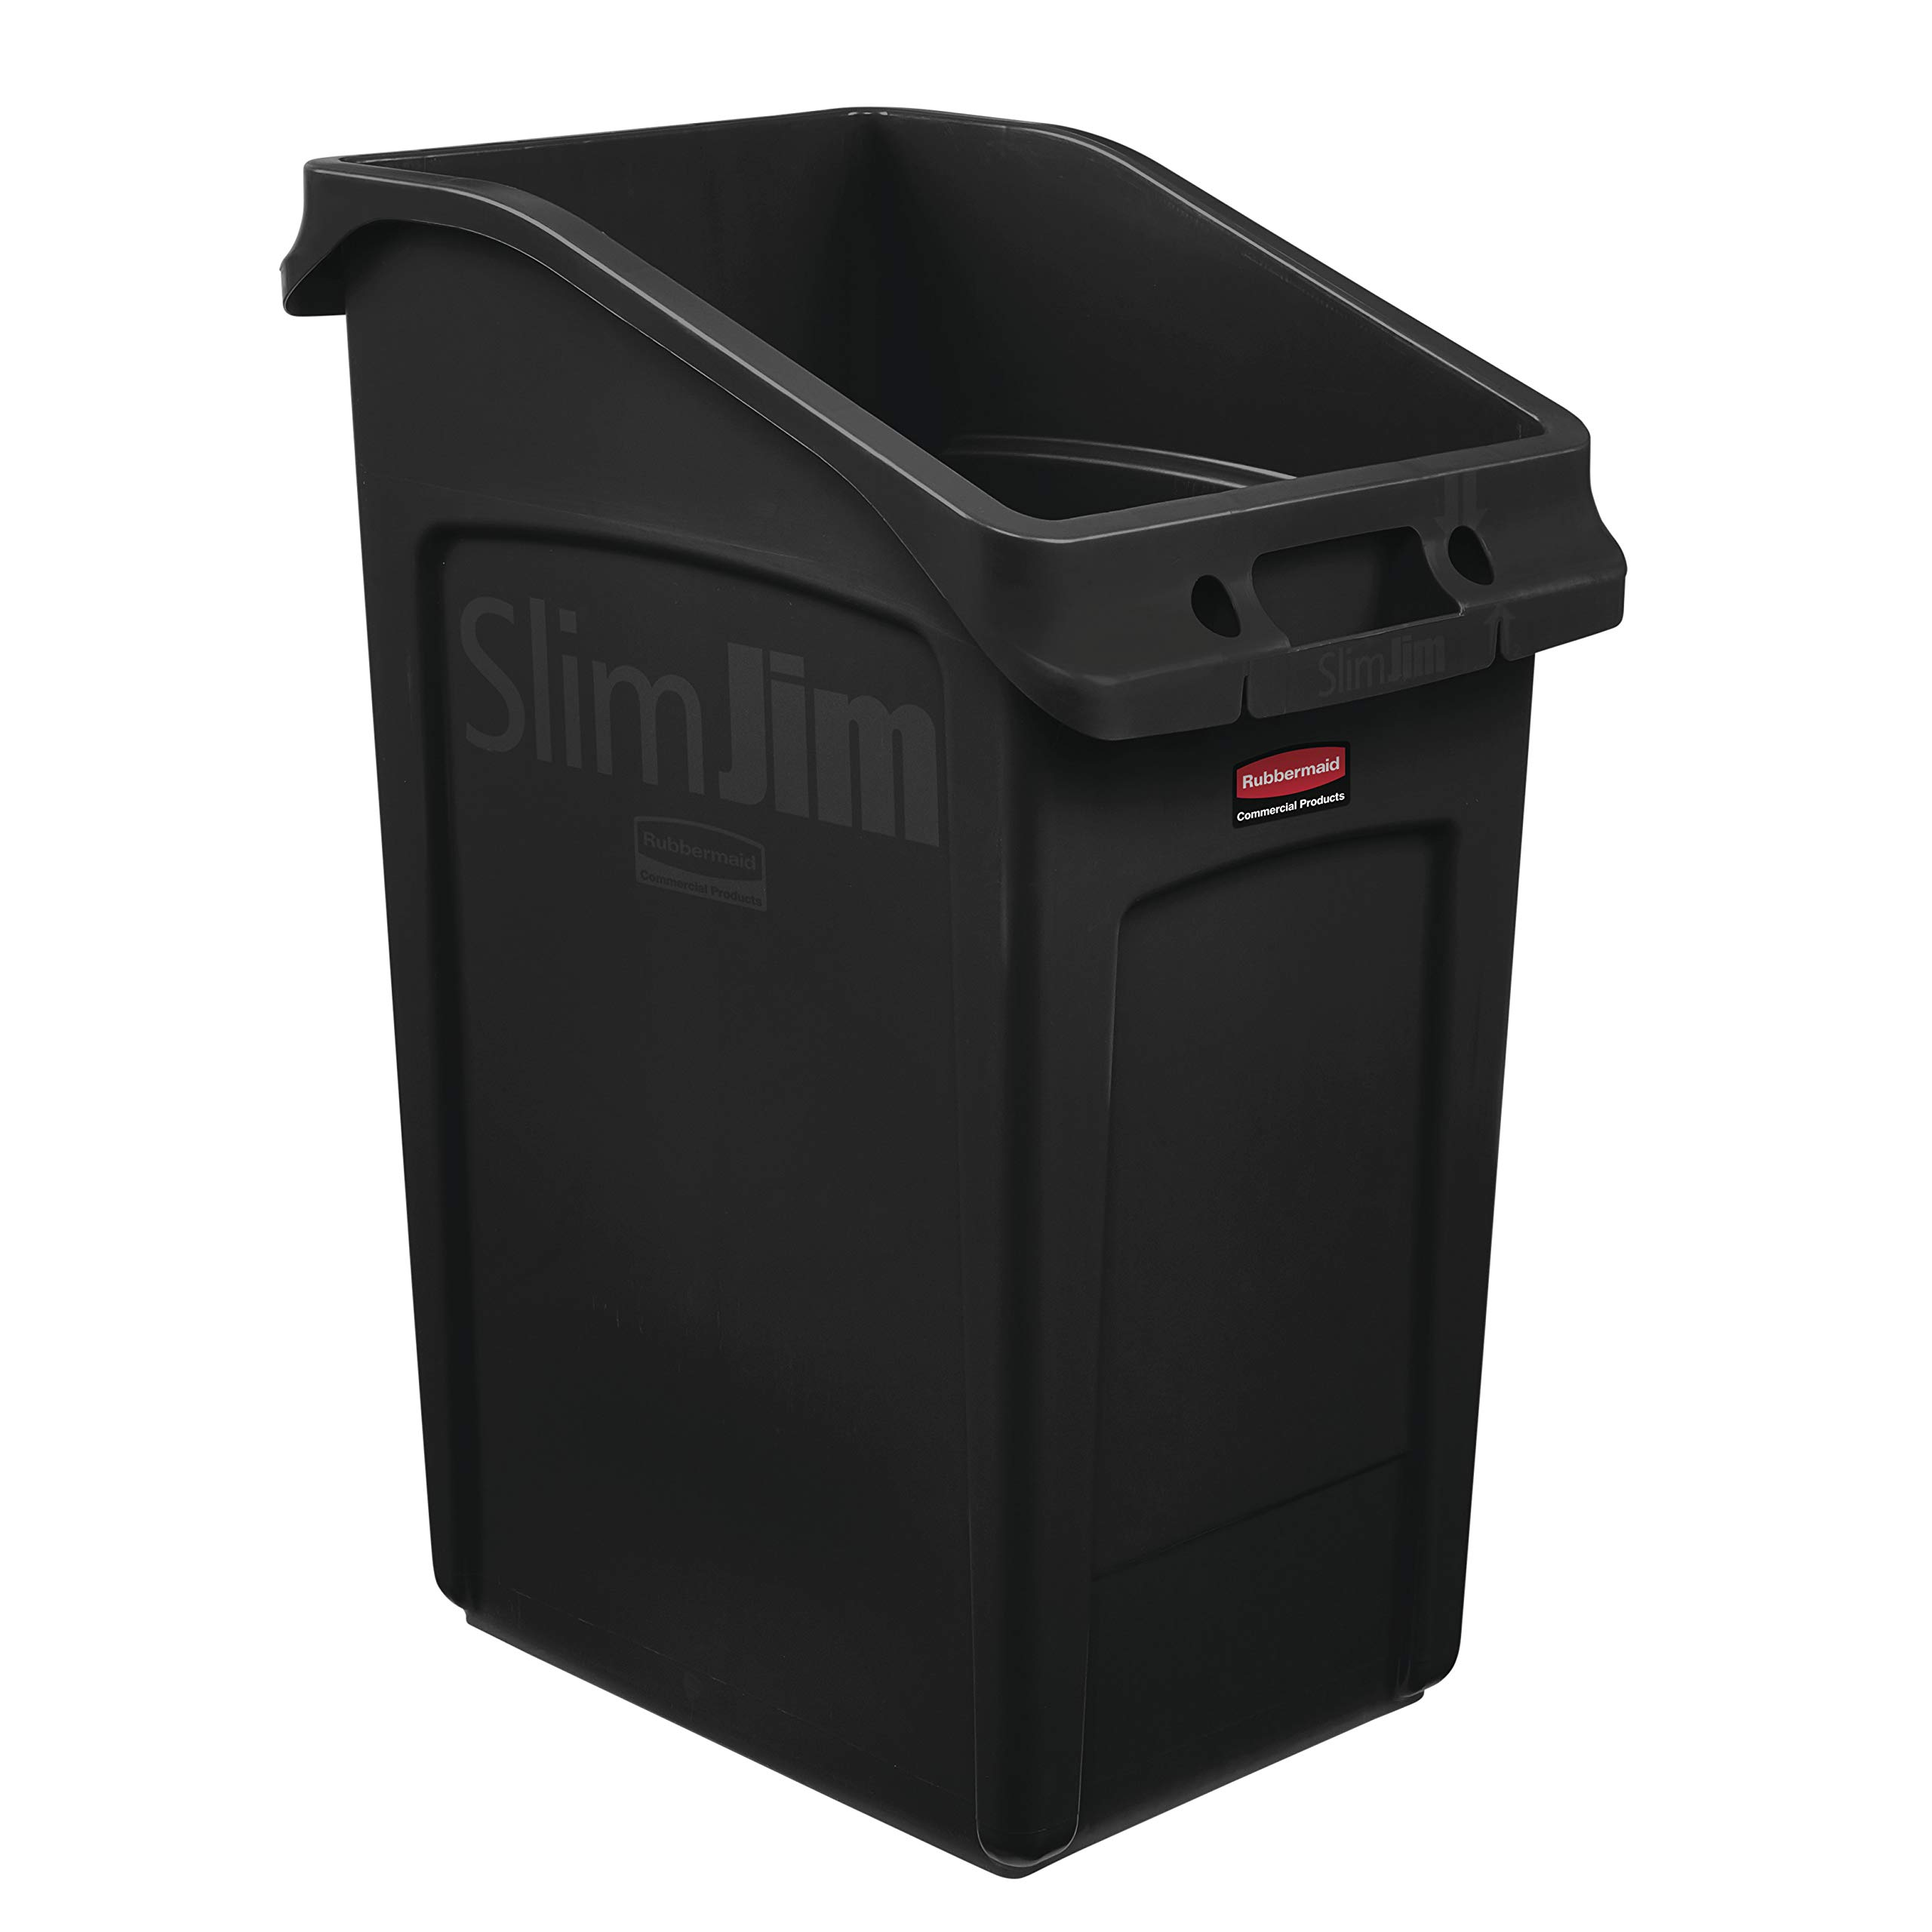 Rubbermaid Commercial Products 2026722 Slim Jim Under-Counter Trash Can with Venting Channels, 23 Gallon, Black